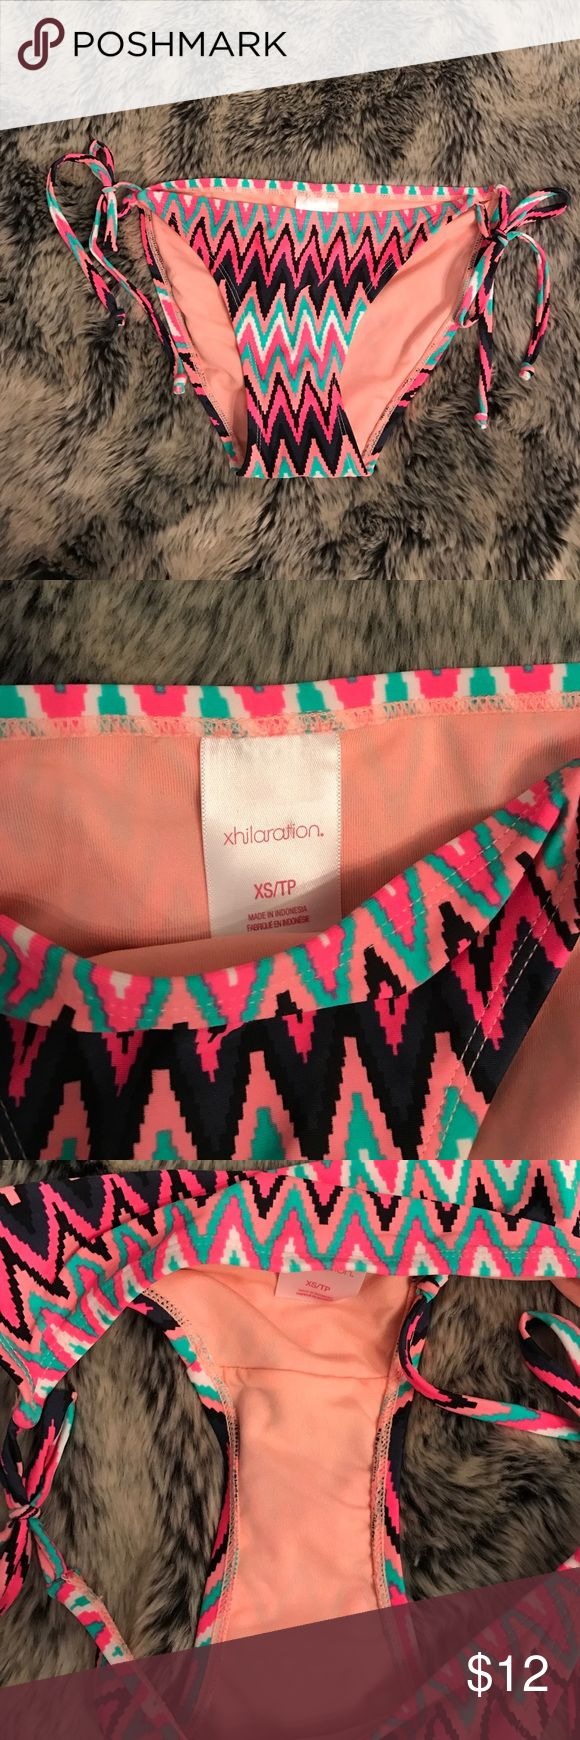 X H I L A R A T I O N NWOT | Chevron bikini bottom | Ties on the sides | Has lots of summery colors including peach, pink, coral, navy blue, aqua, white, etc. | Goes with any plain bikini top! Xhilaration Swim Bikinis